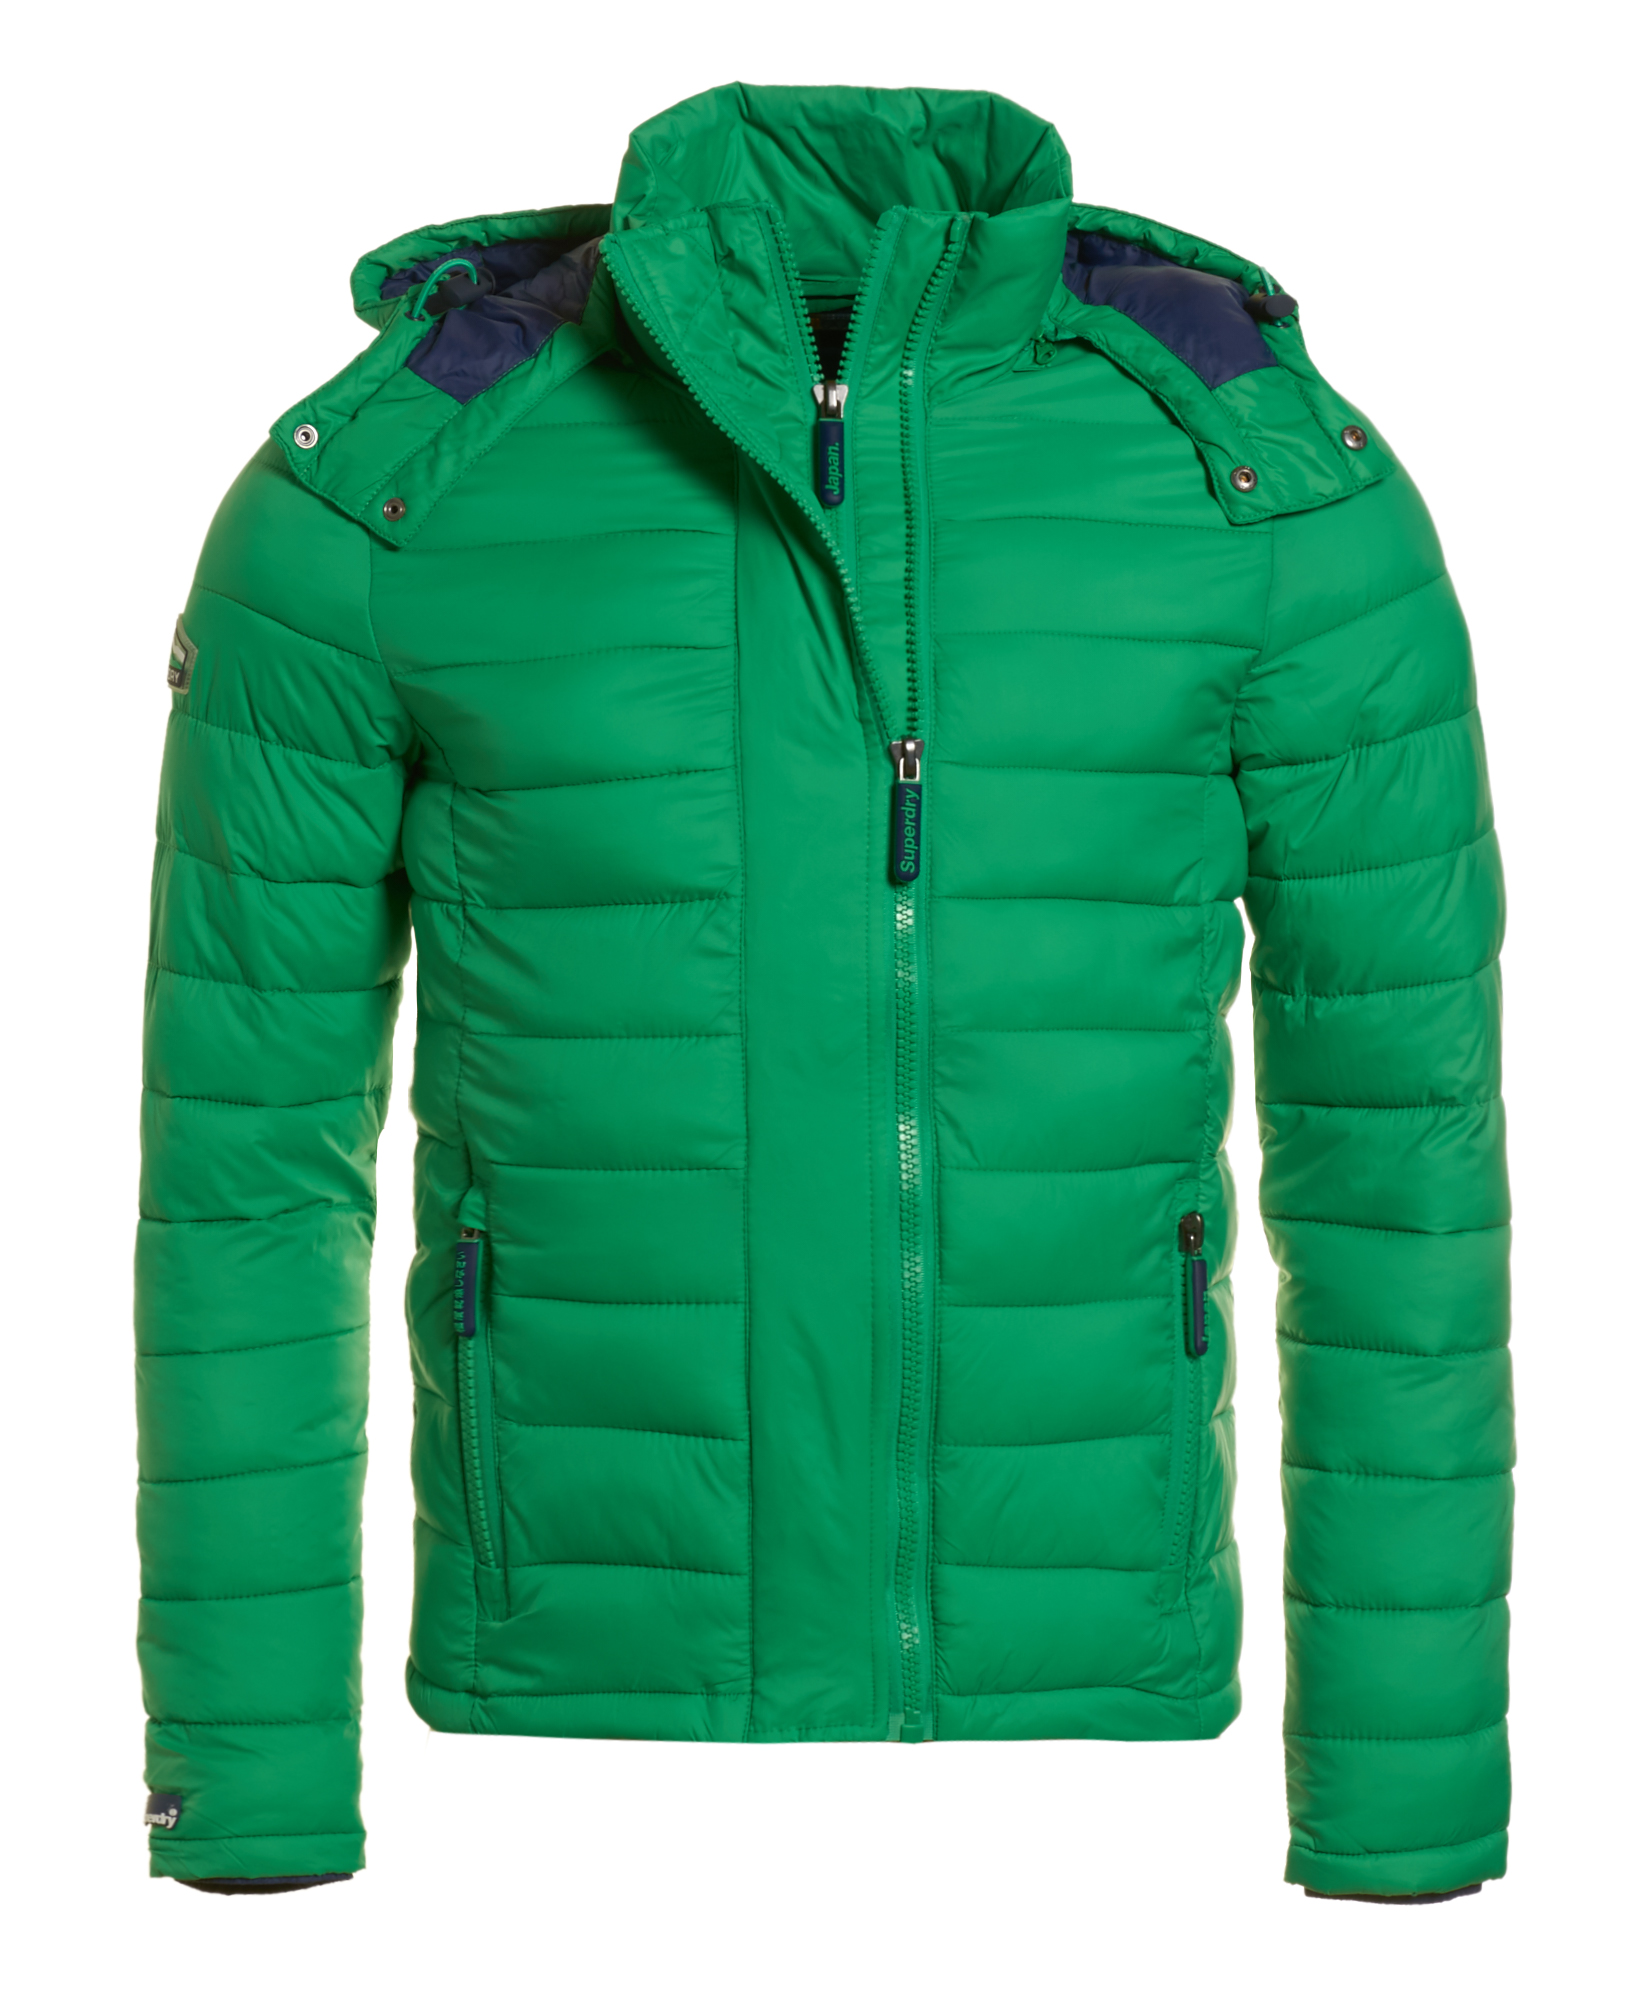 Superdry: New Mens Superdry Fuji Double Zip Hood Jacket Bright Green